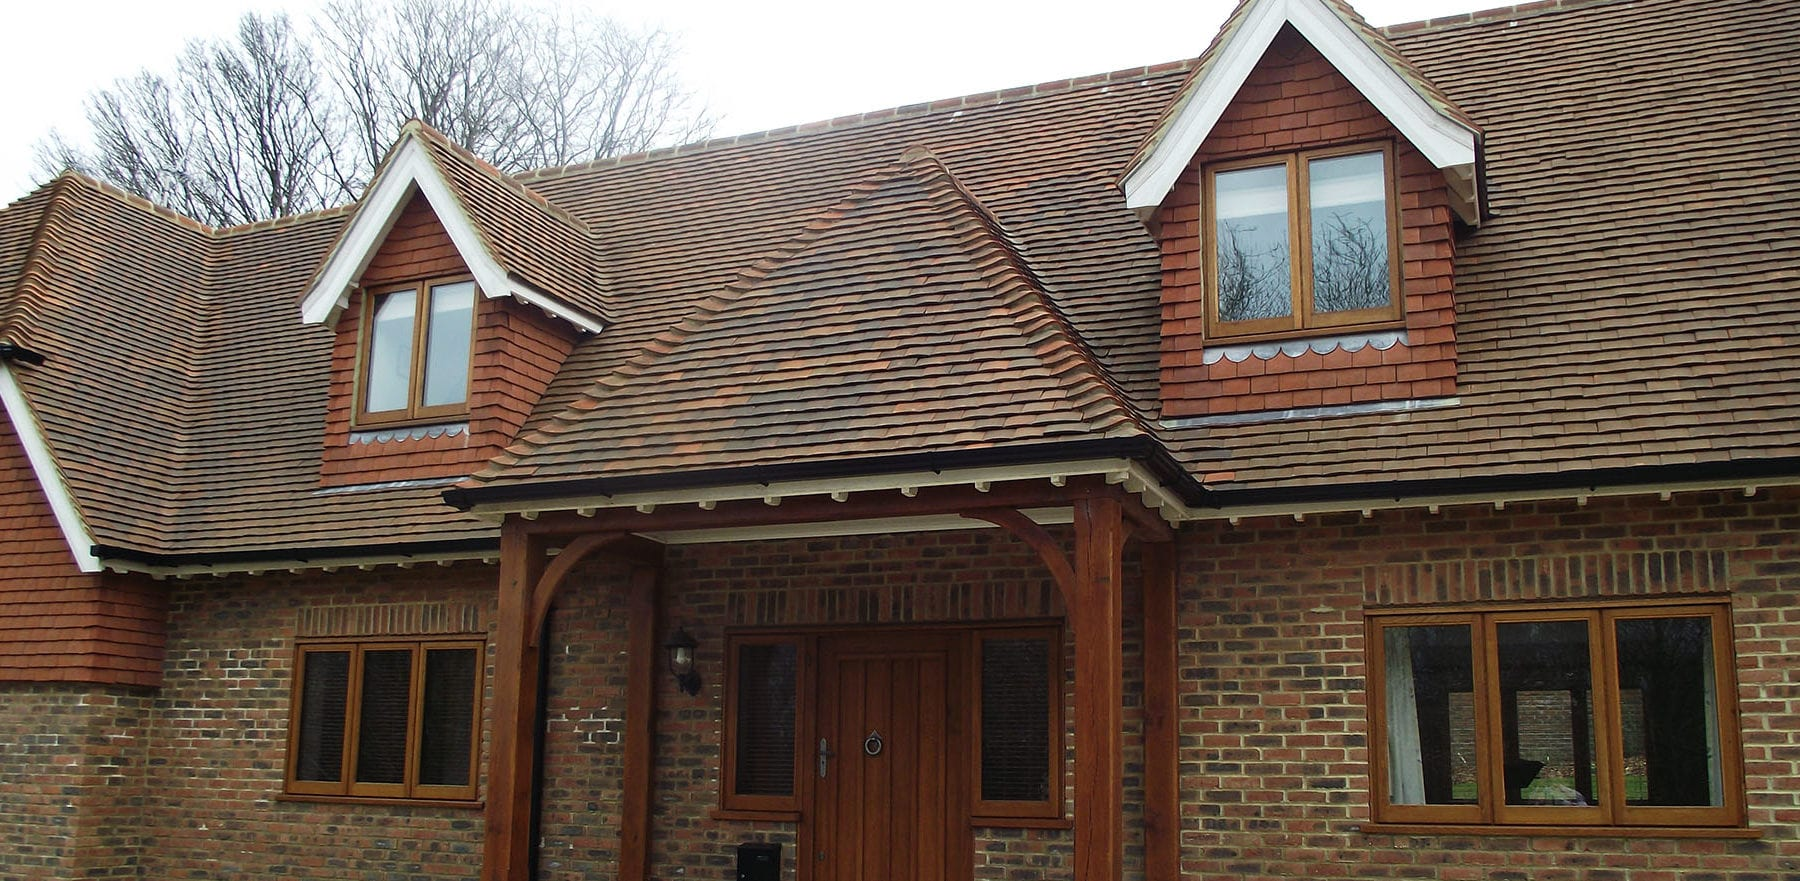 Lifestiles - Handcrafted Autumn Clay Roof Tiles - Sussex, England 3